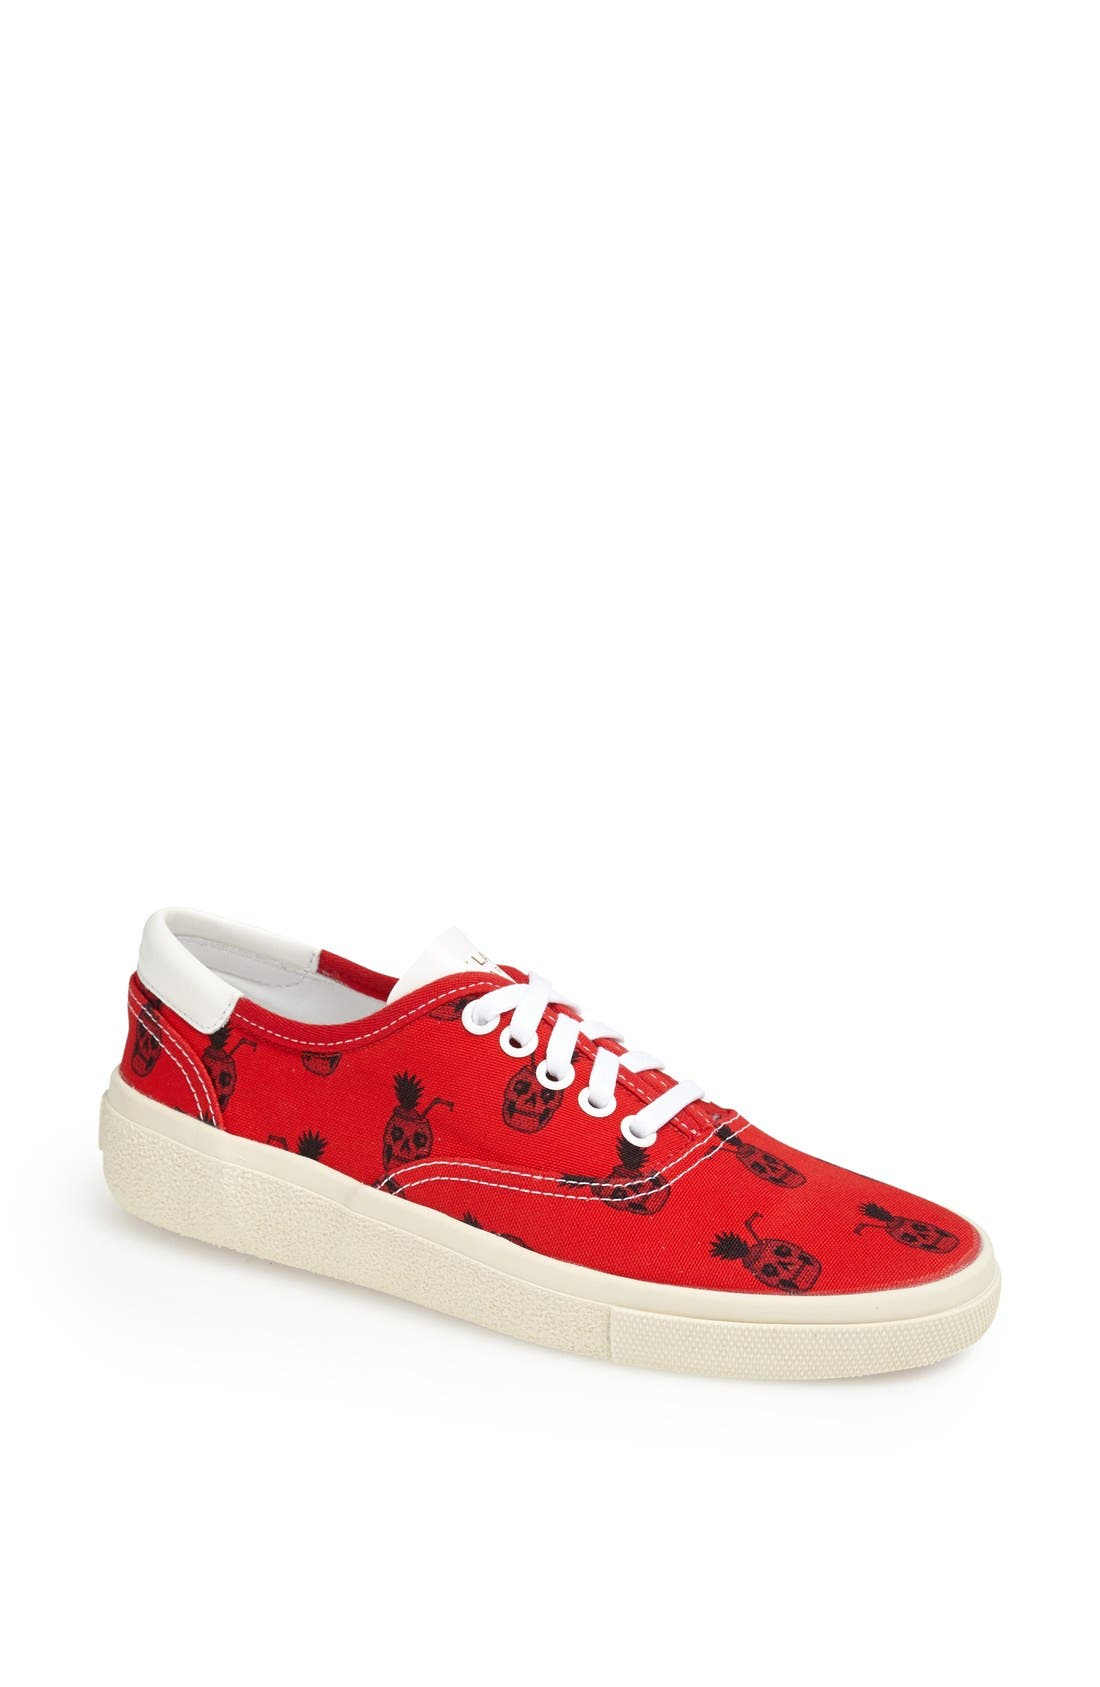 Alternate Image 1 Selected - Saint Laurent 'Pinaskullada' Skull Print Sneaker